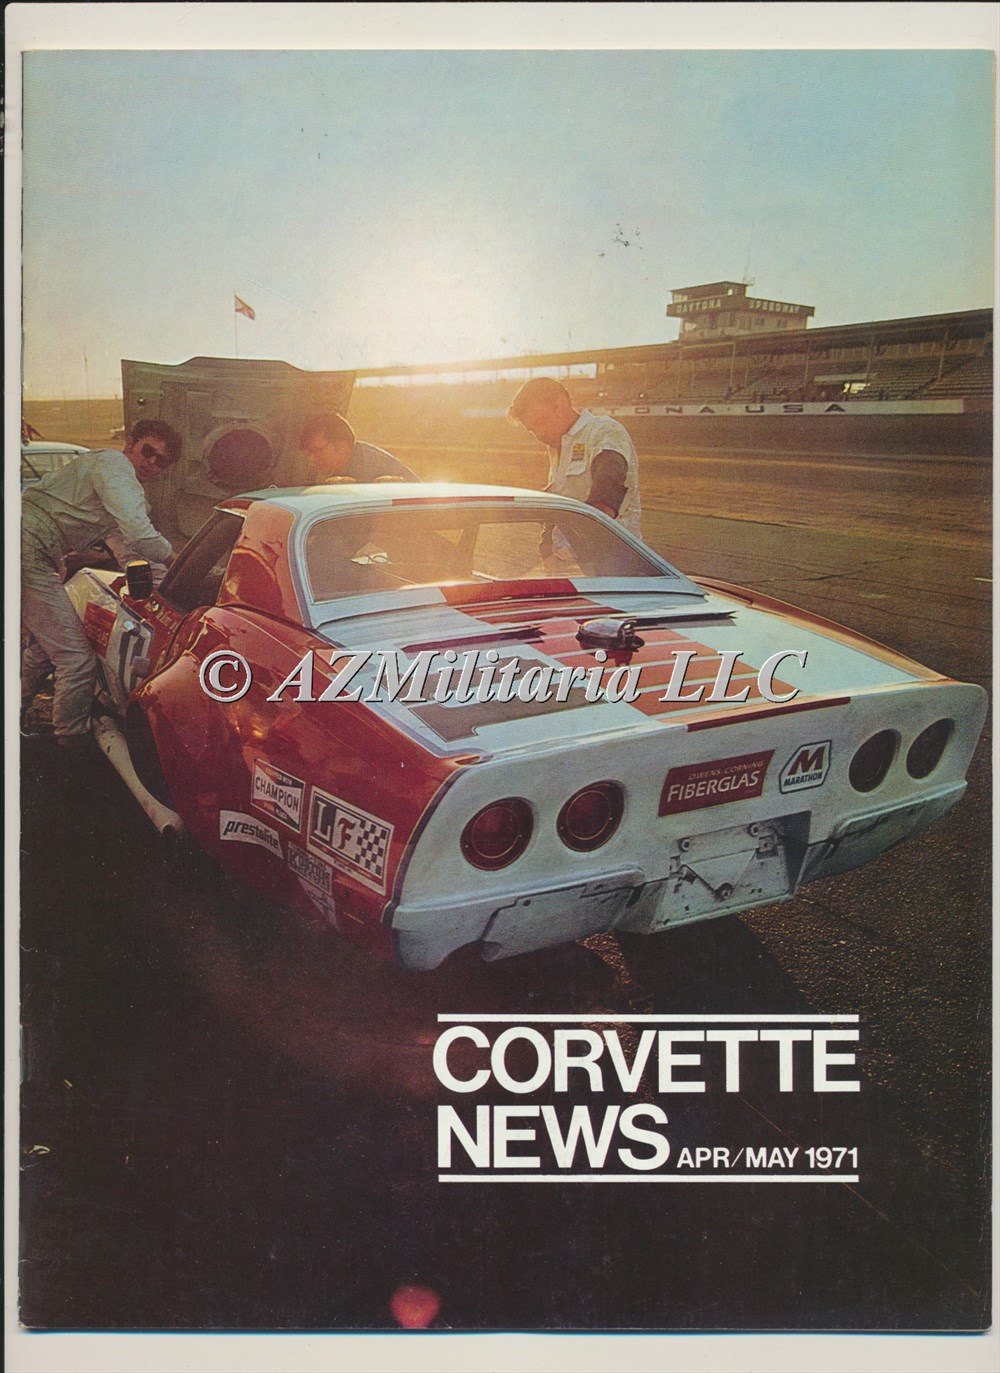 Primary image for Corvette News Apr/May 1971